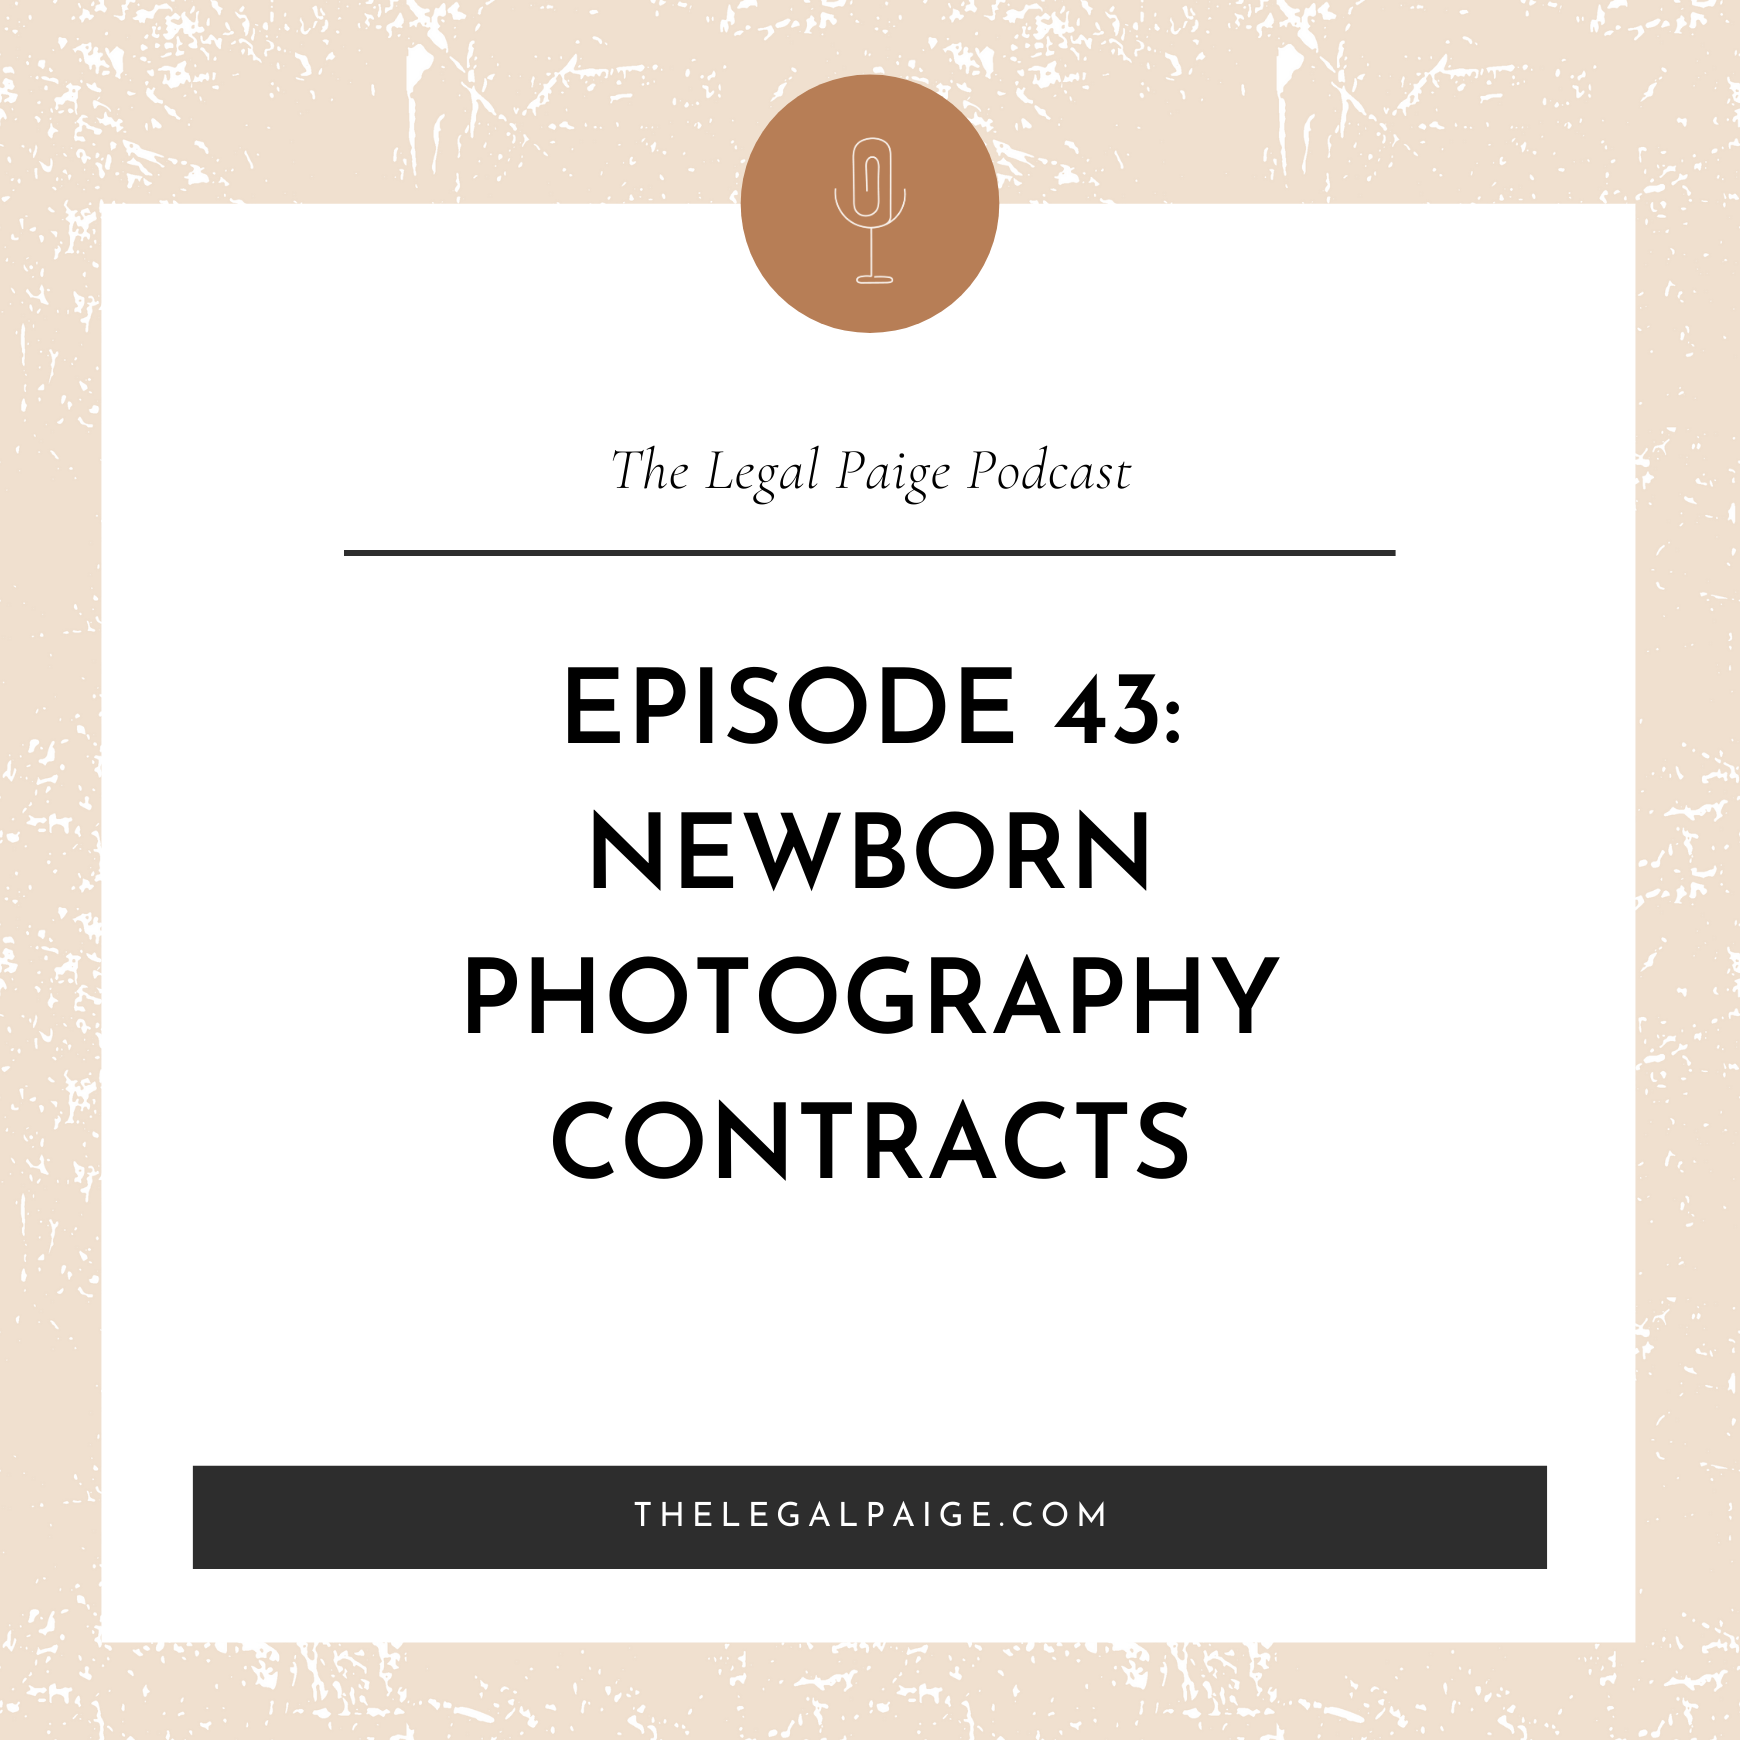 Ep 43: Newborn Photography Contracts with Guest Jenni Maroney